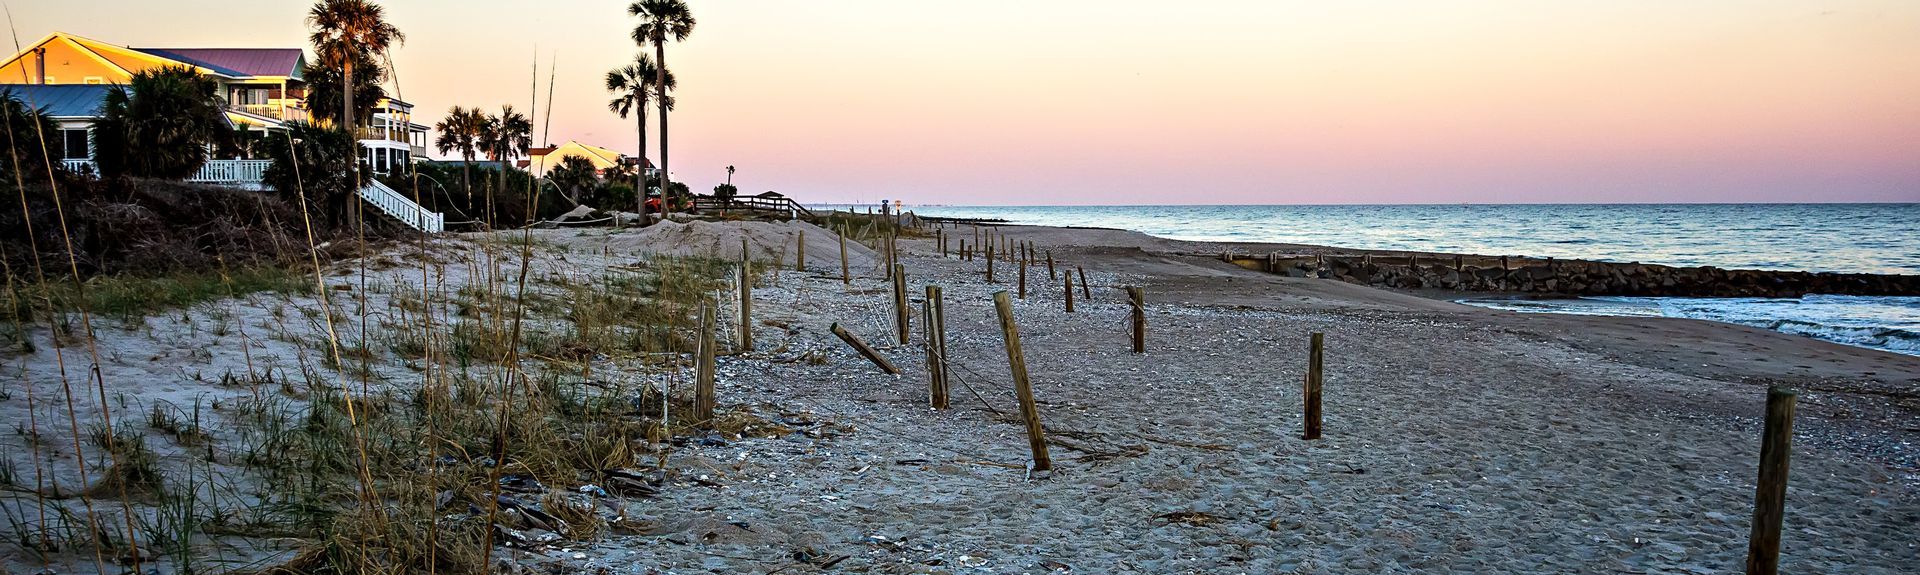 Edisto Beach, Carolina do Sul, Estados Unidos